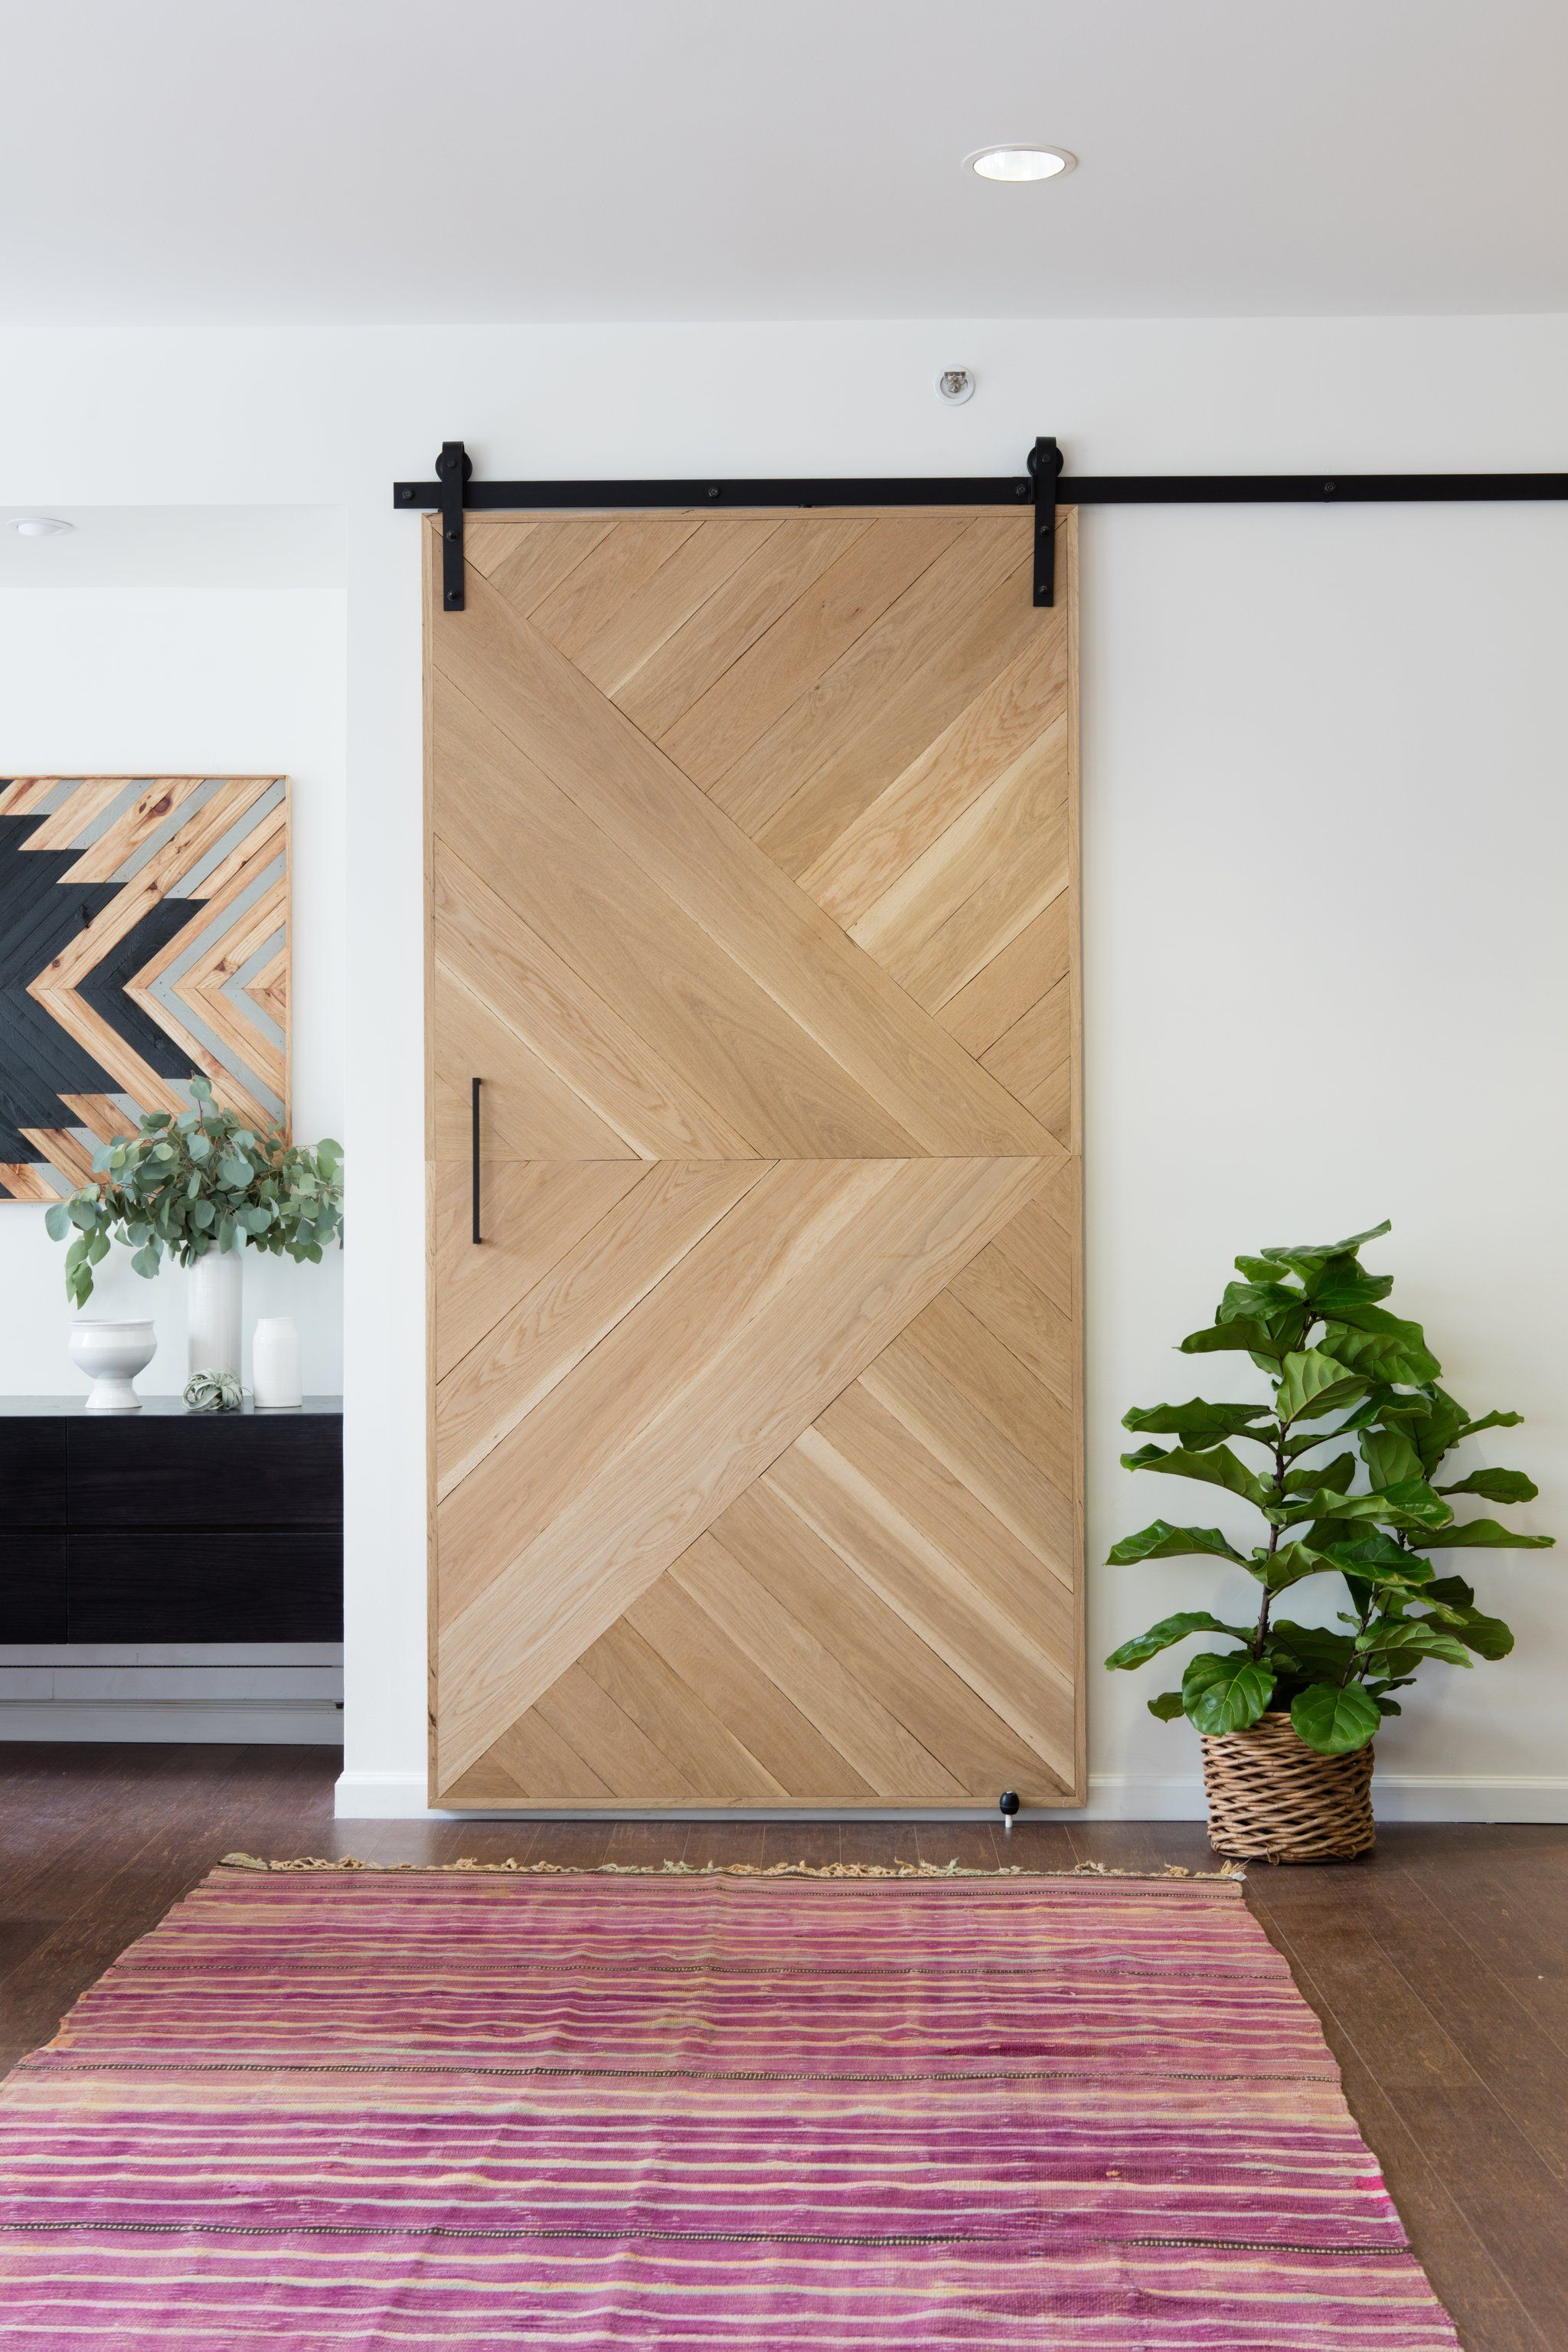 Proof That Cuyana S Fewer Better Things Philosophy Works In Interior Design Interior Barn Doors Door Design Bohemian Interior Design